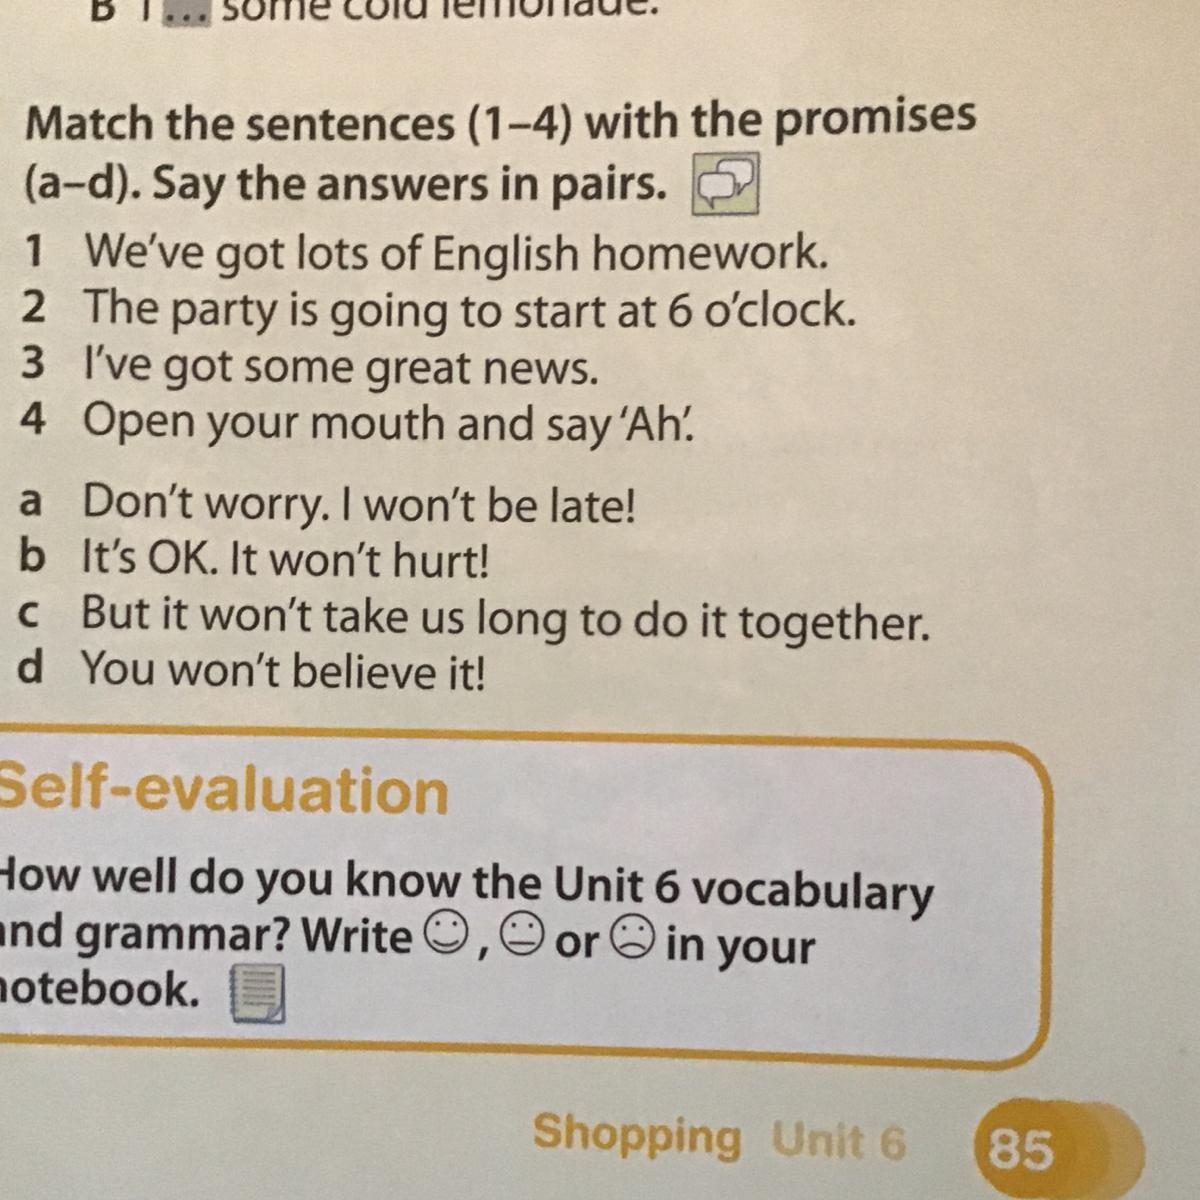 5 Match the sentences (1-4) with the promises (a-d). Say